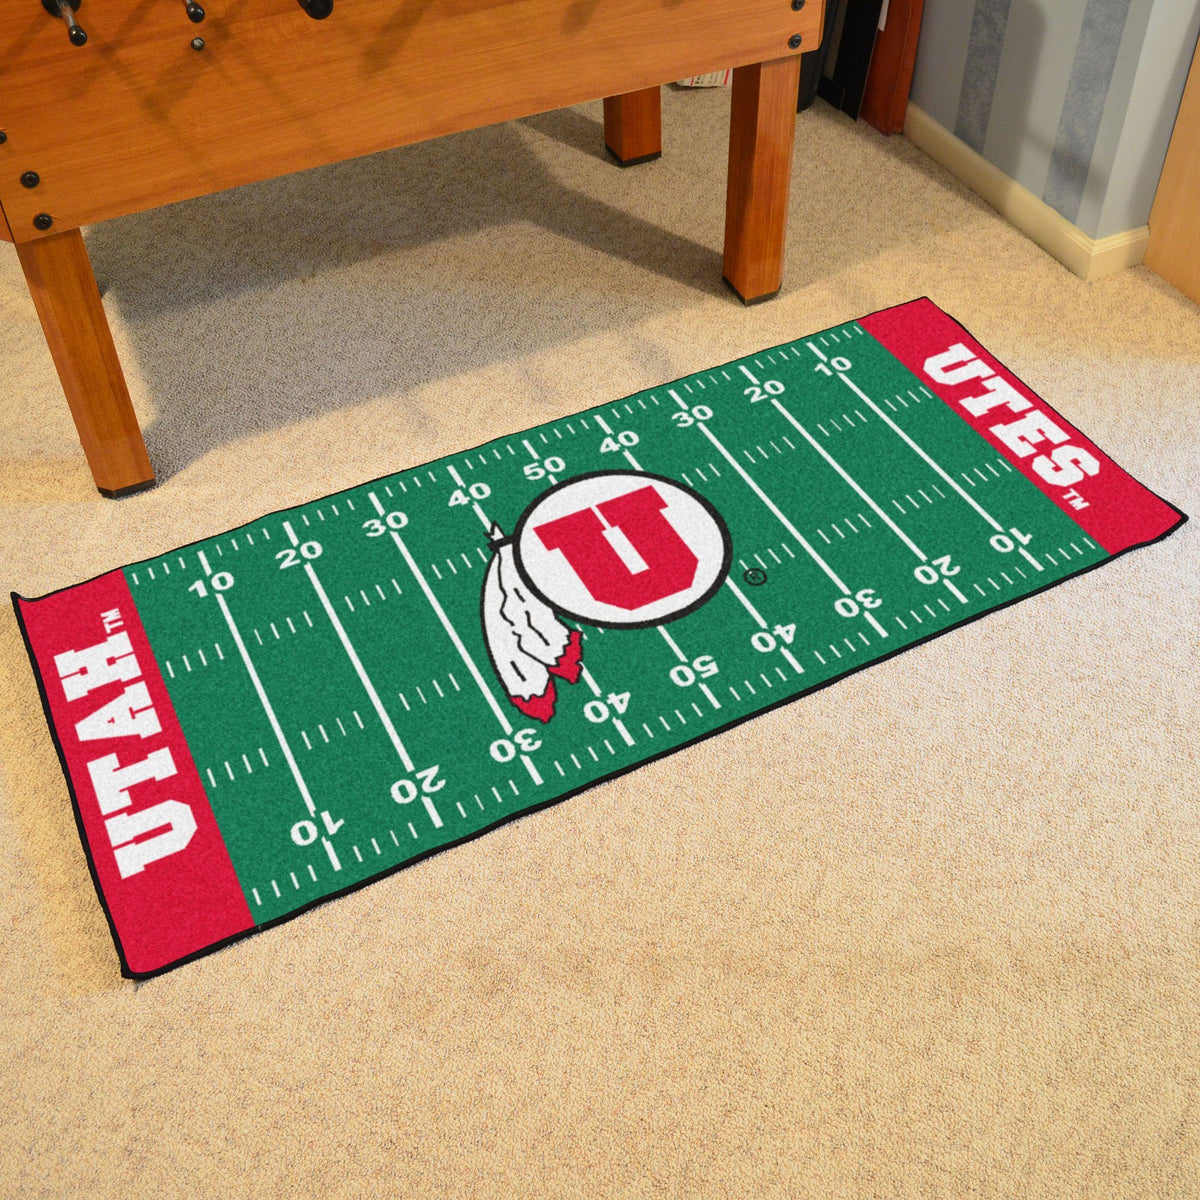 Collegiate - Football Field Runner Collegiate Mats, Rectangular Mats, Football Field Runner, Collegiate, Home Fan Mats Utah